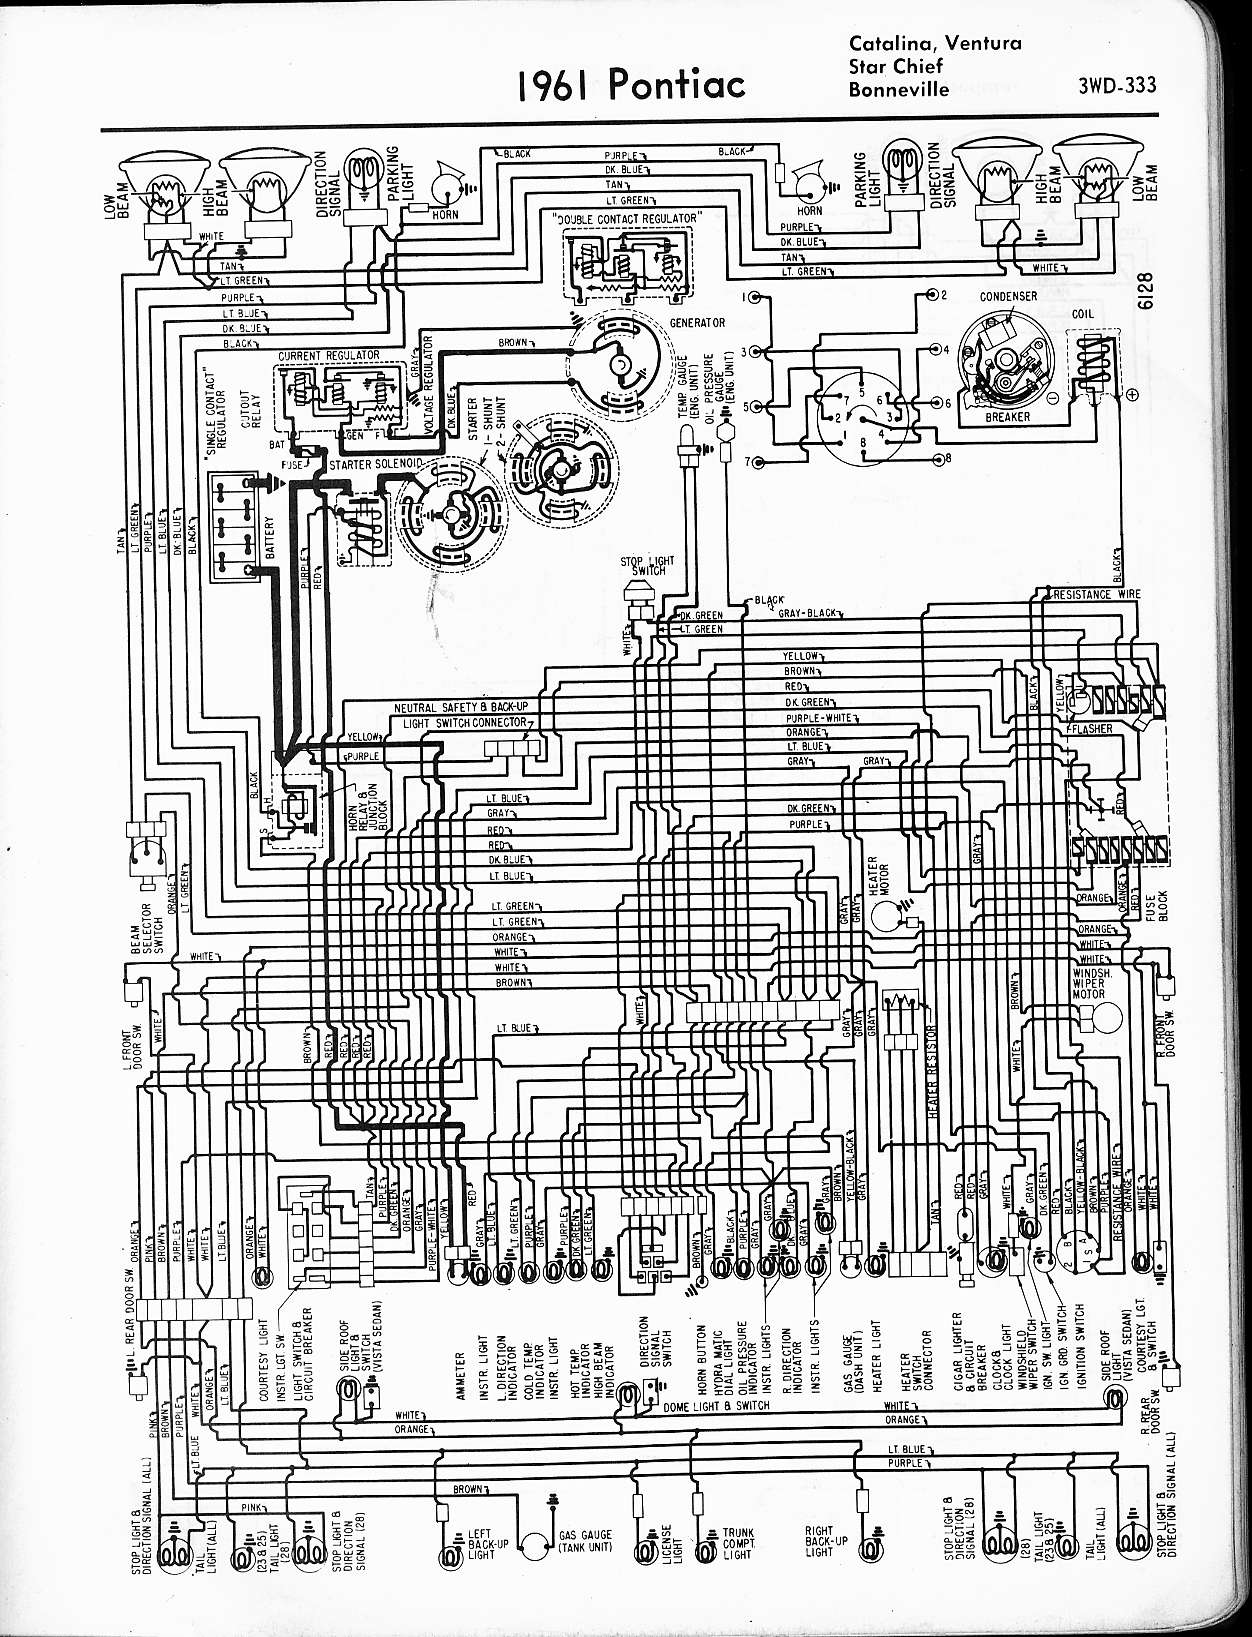 Wallace Racing Wiring Diagrams 1962 Chevy C10 Steering Column Diagram 1961 Catalina Star Chief Ventura Bonneville Tempest